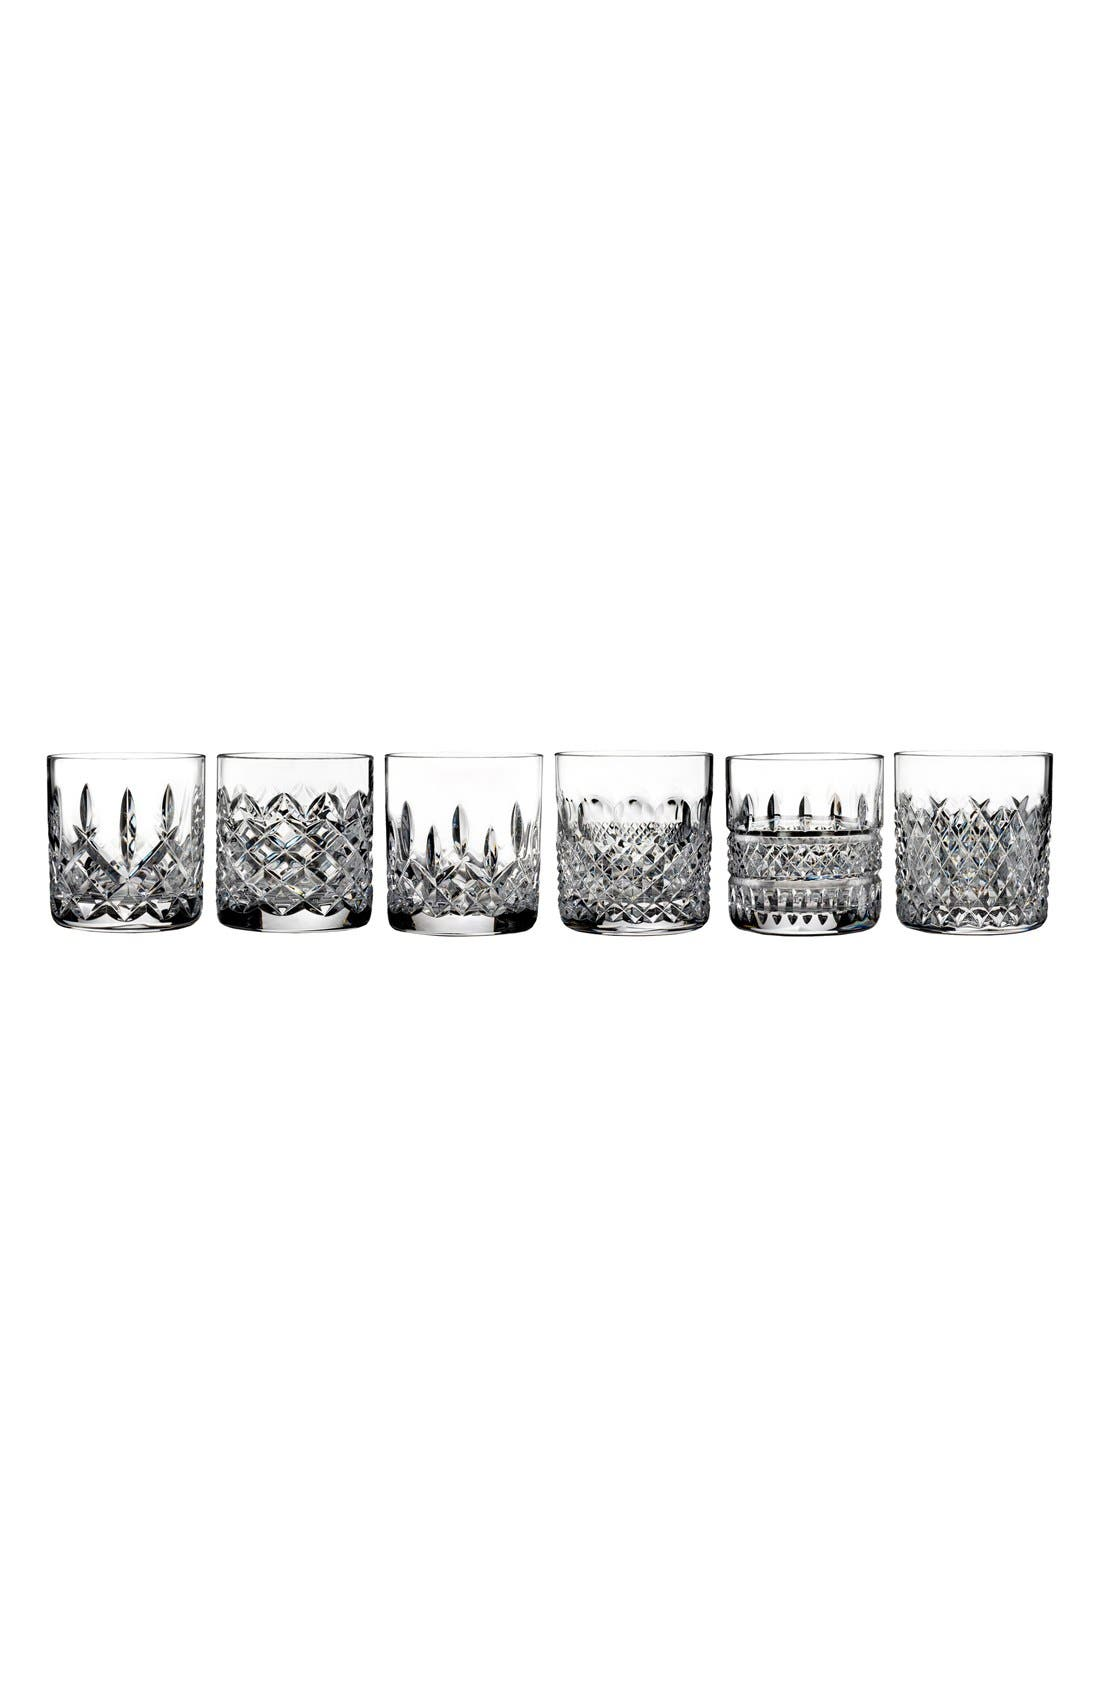 WATERFORD 'Heritage' Lead Crystal Tumblers